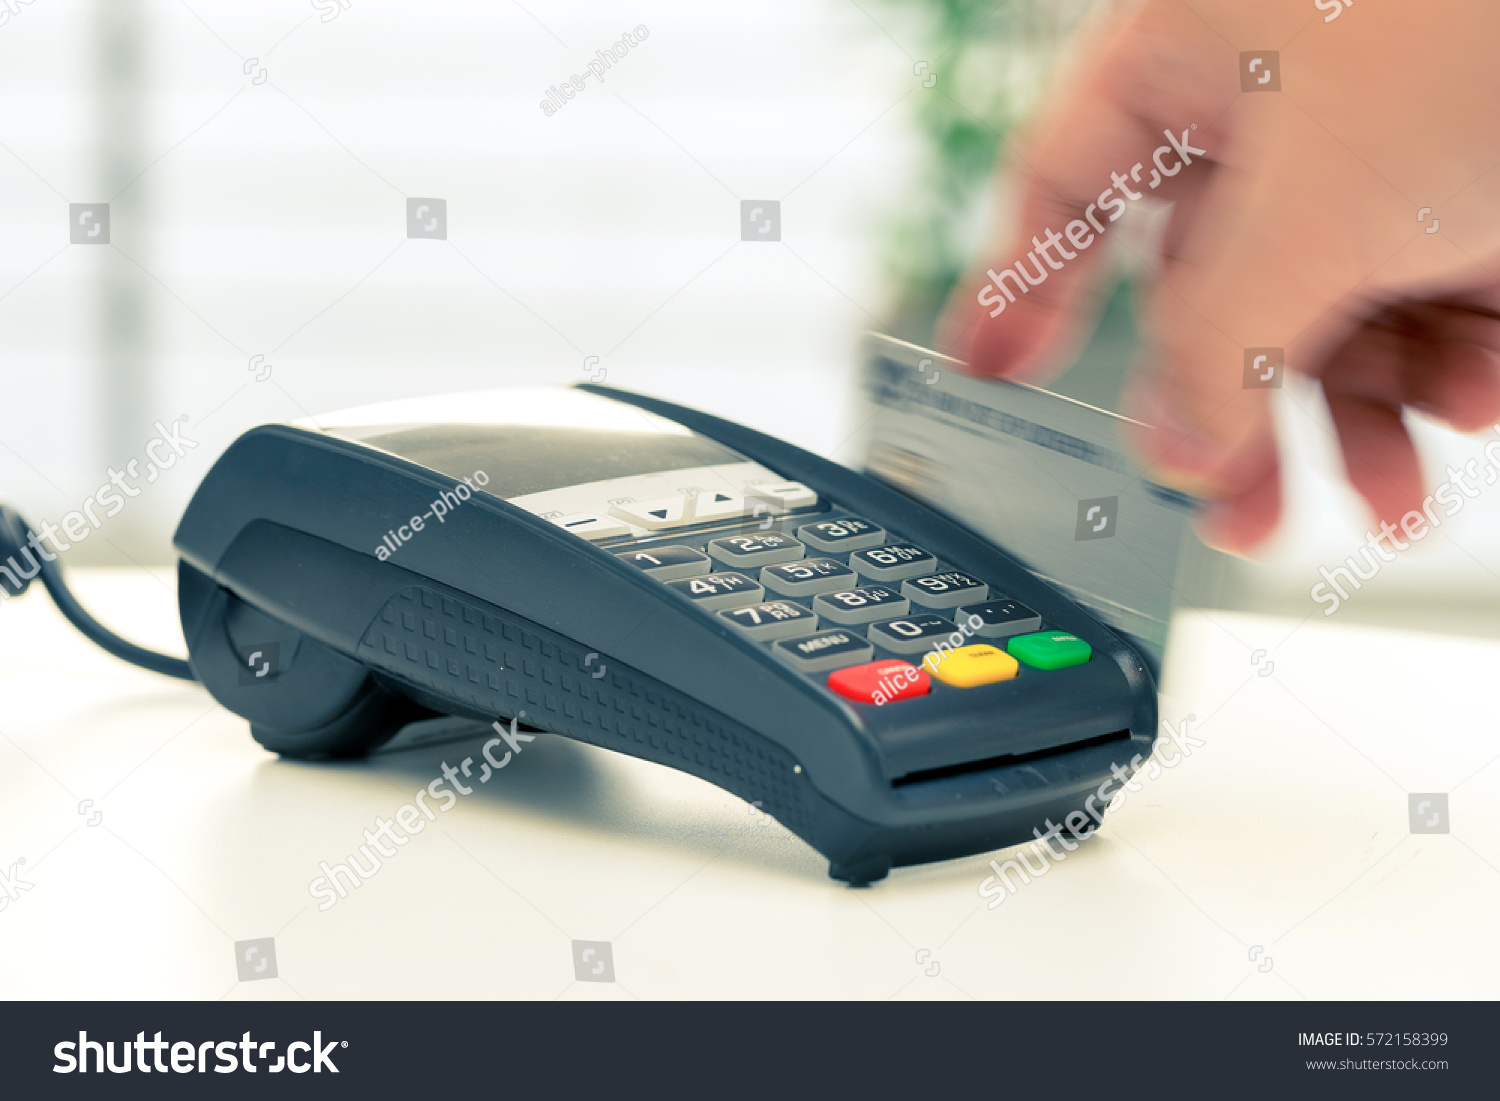 Online Shopping Mode Of Payment Credit Card Machine Payment Online Shopping Stock Photo